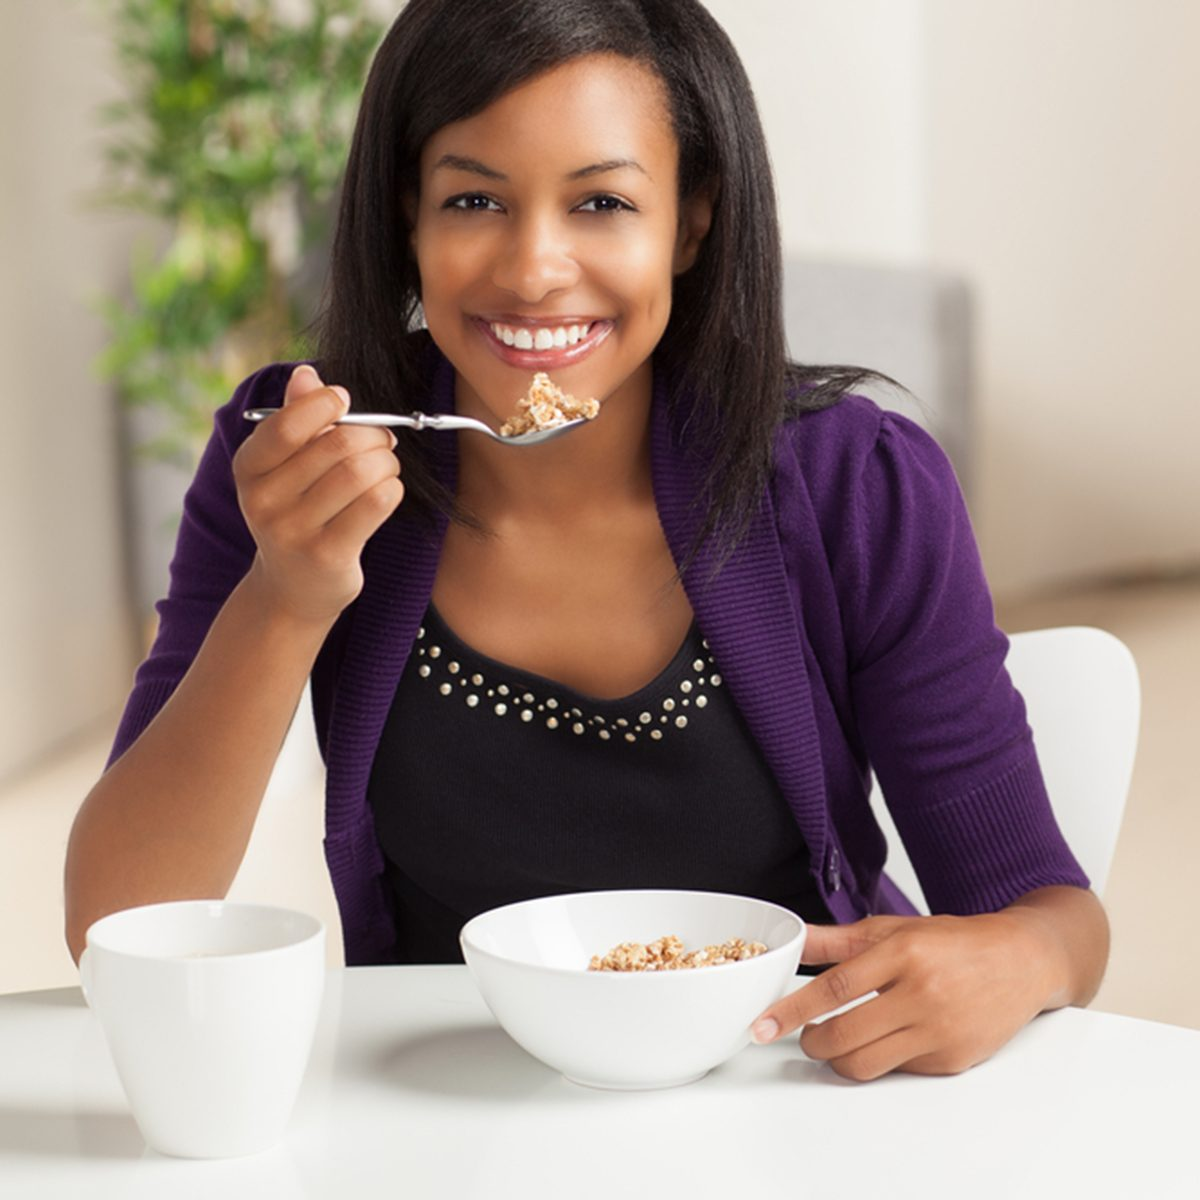 Beautiful young black female sitting at dining room table eating breakfast and drinking coffee.